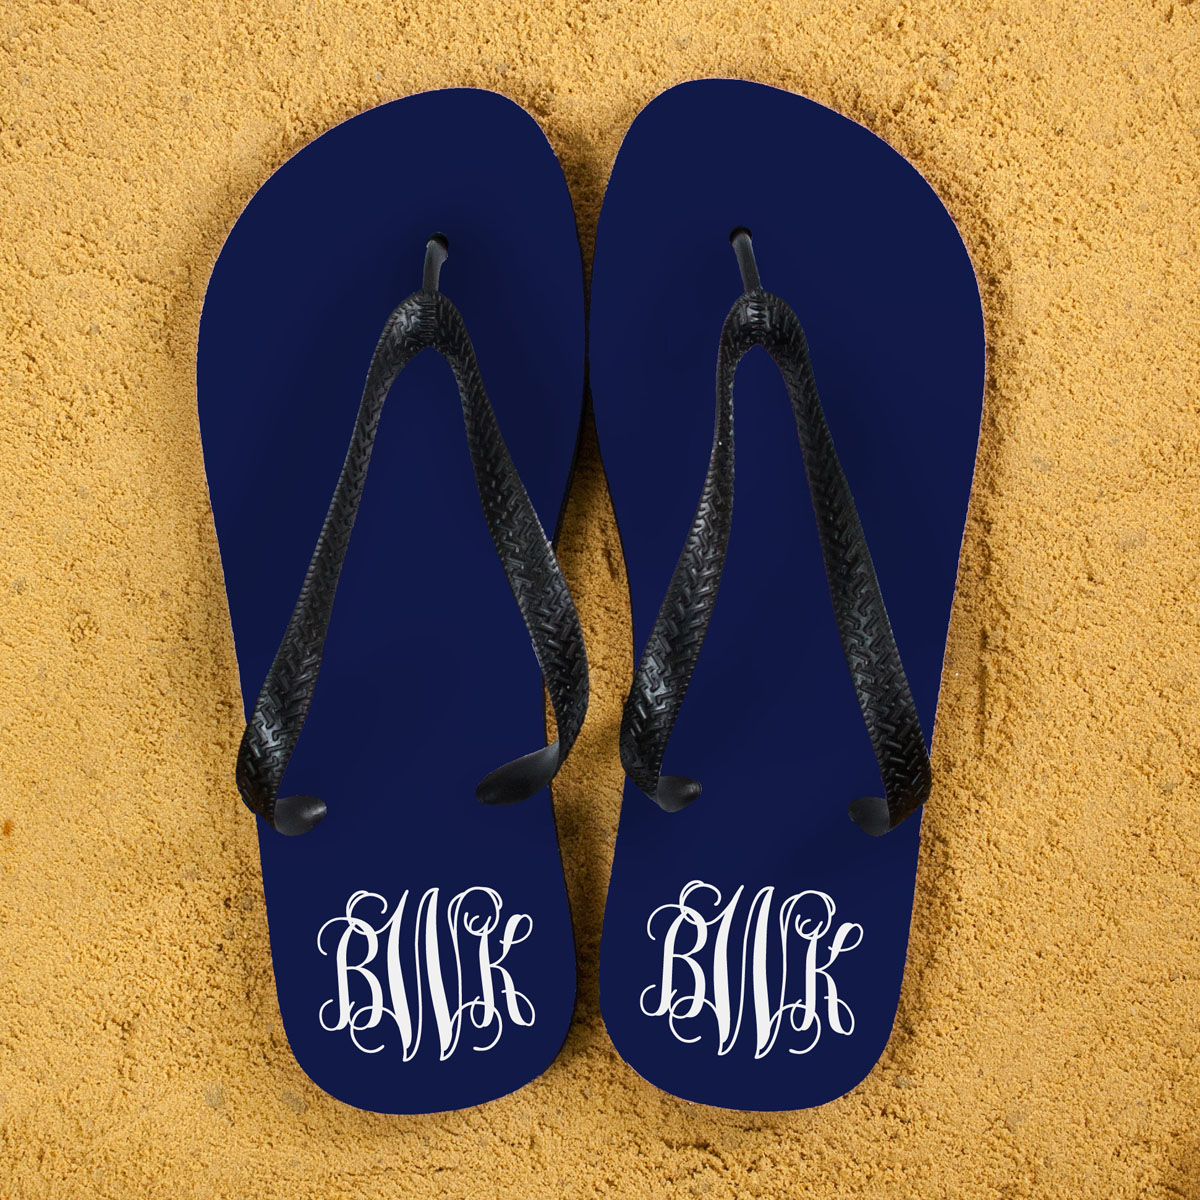 Monogrammed-Flip-Flops-in-Blue-and-White